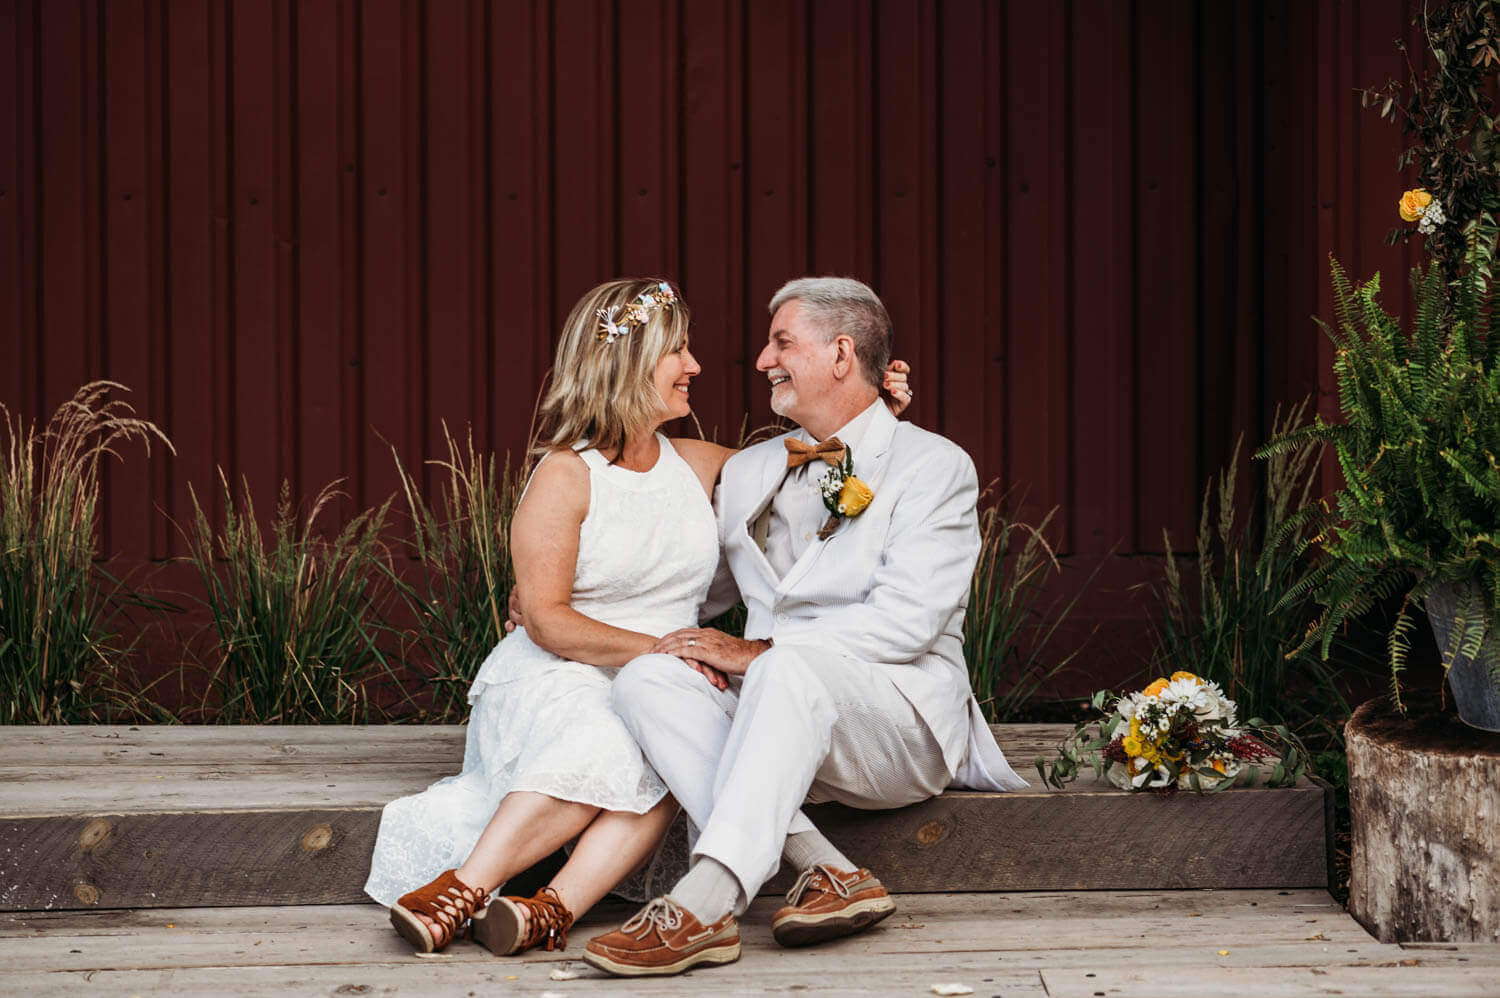 bride and groom sit on concrete step